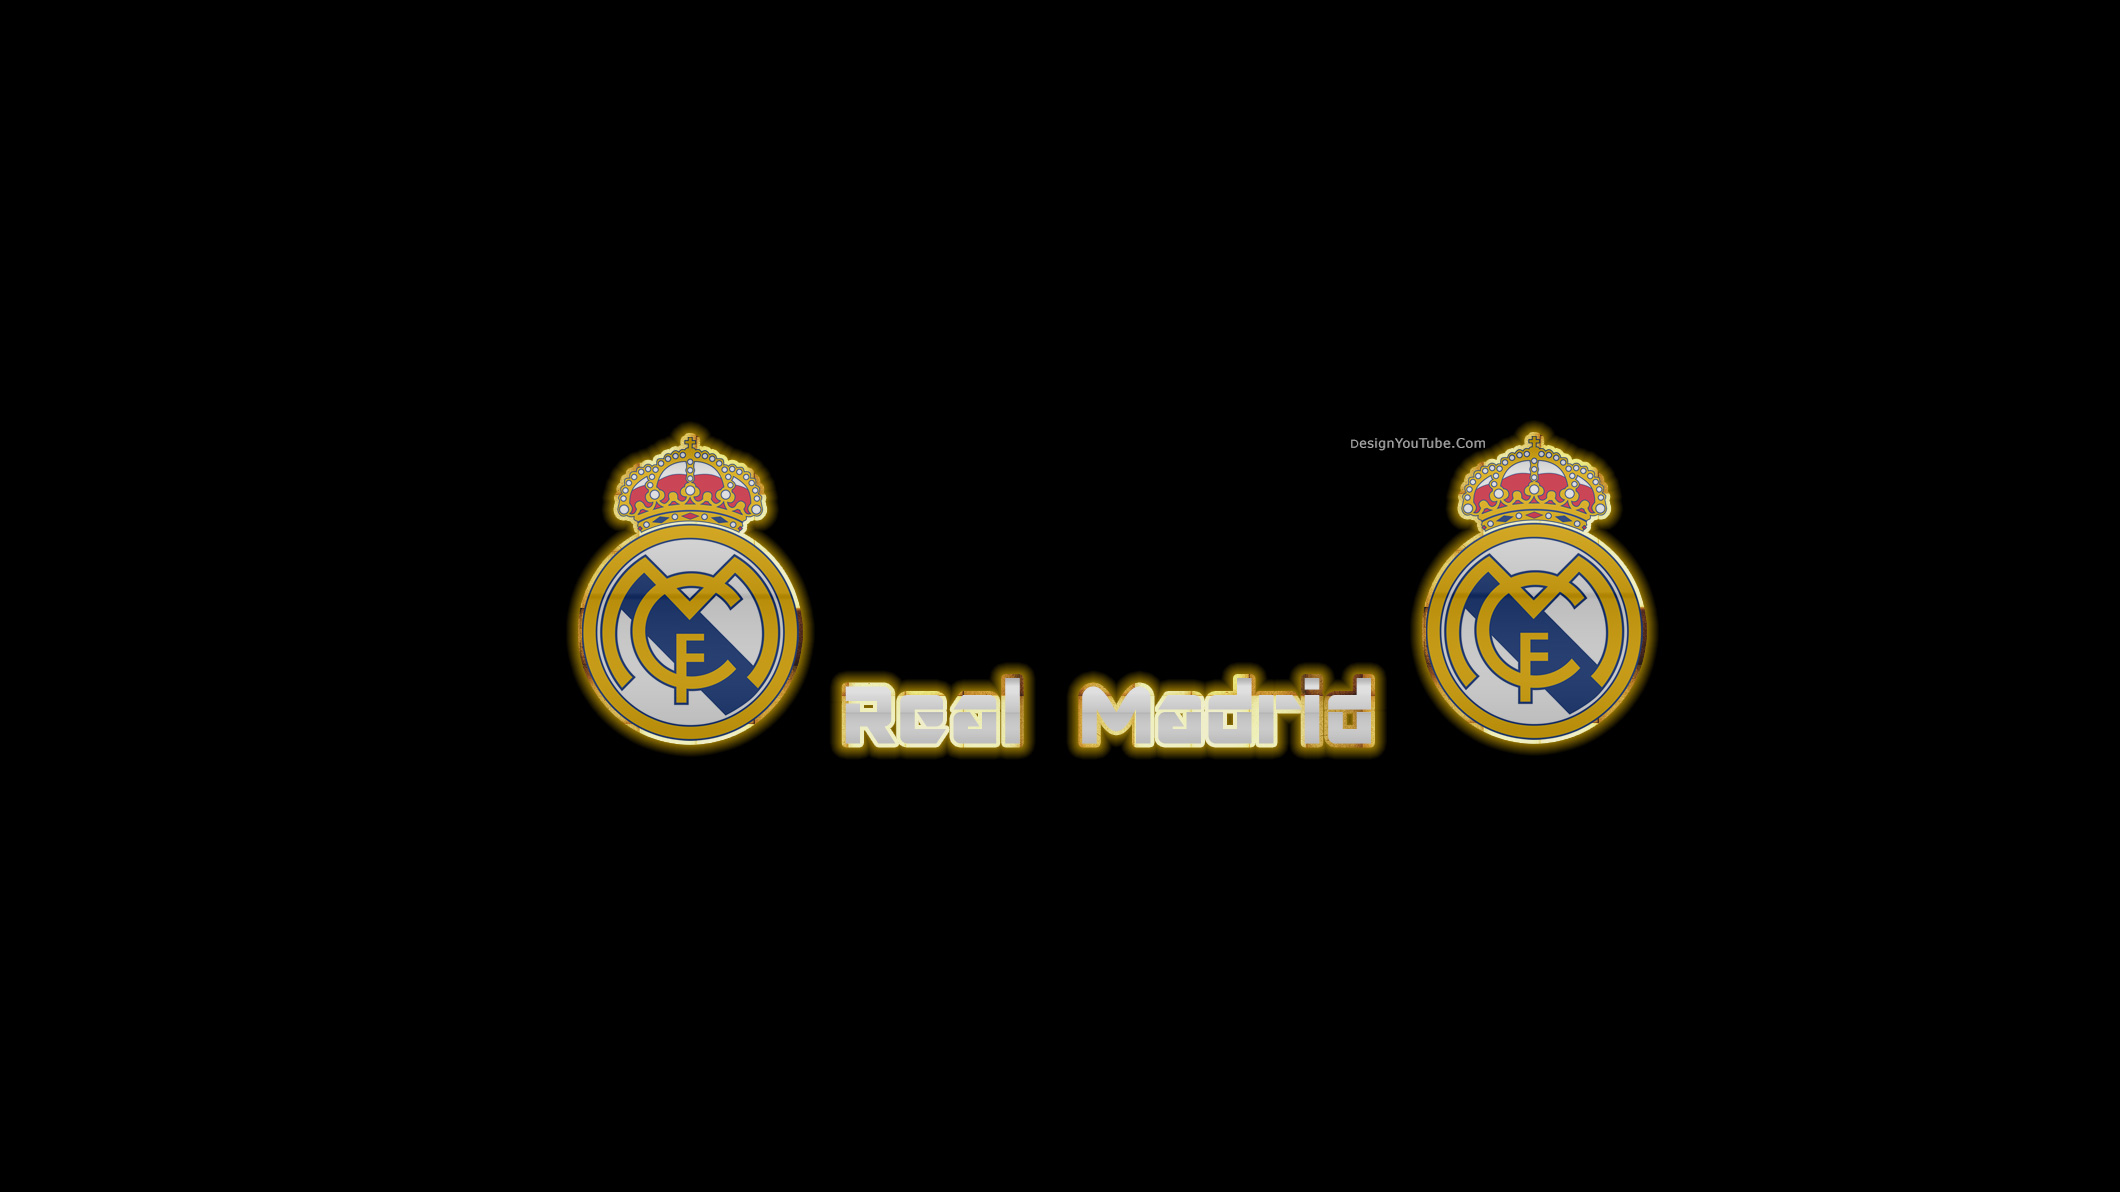 Real Madrid Youtube Channel Art